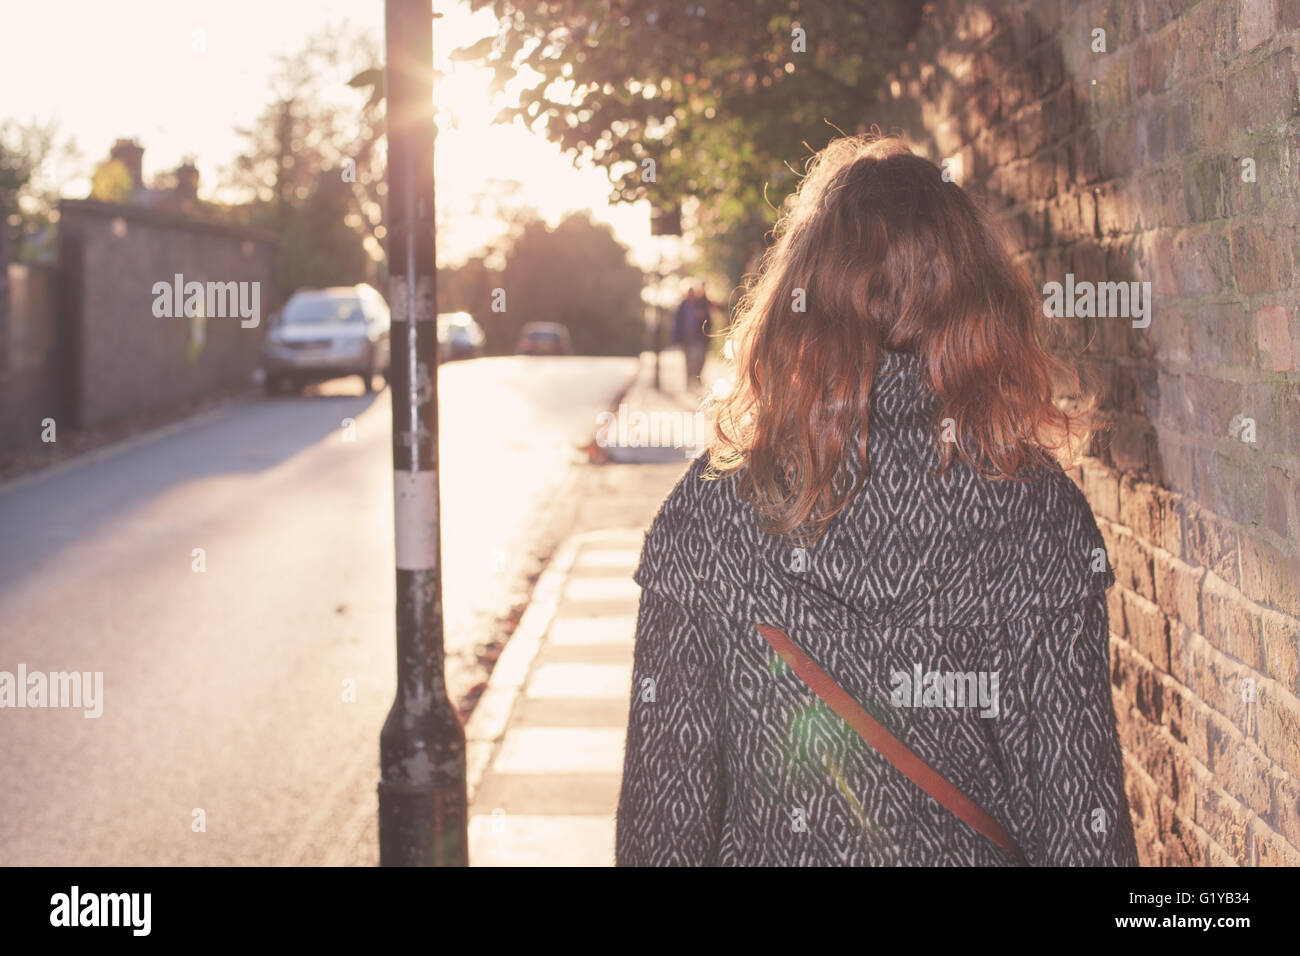 A young woman is walking into the sunset on an autumn day in the city - Stock Image